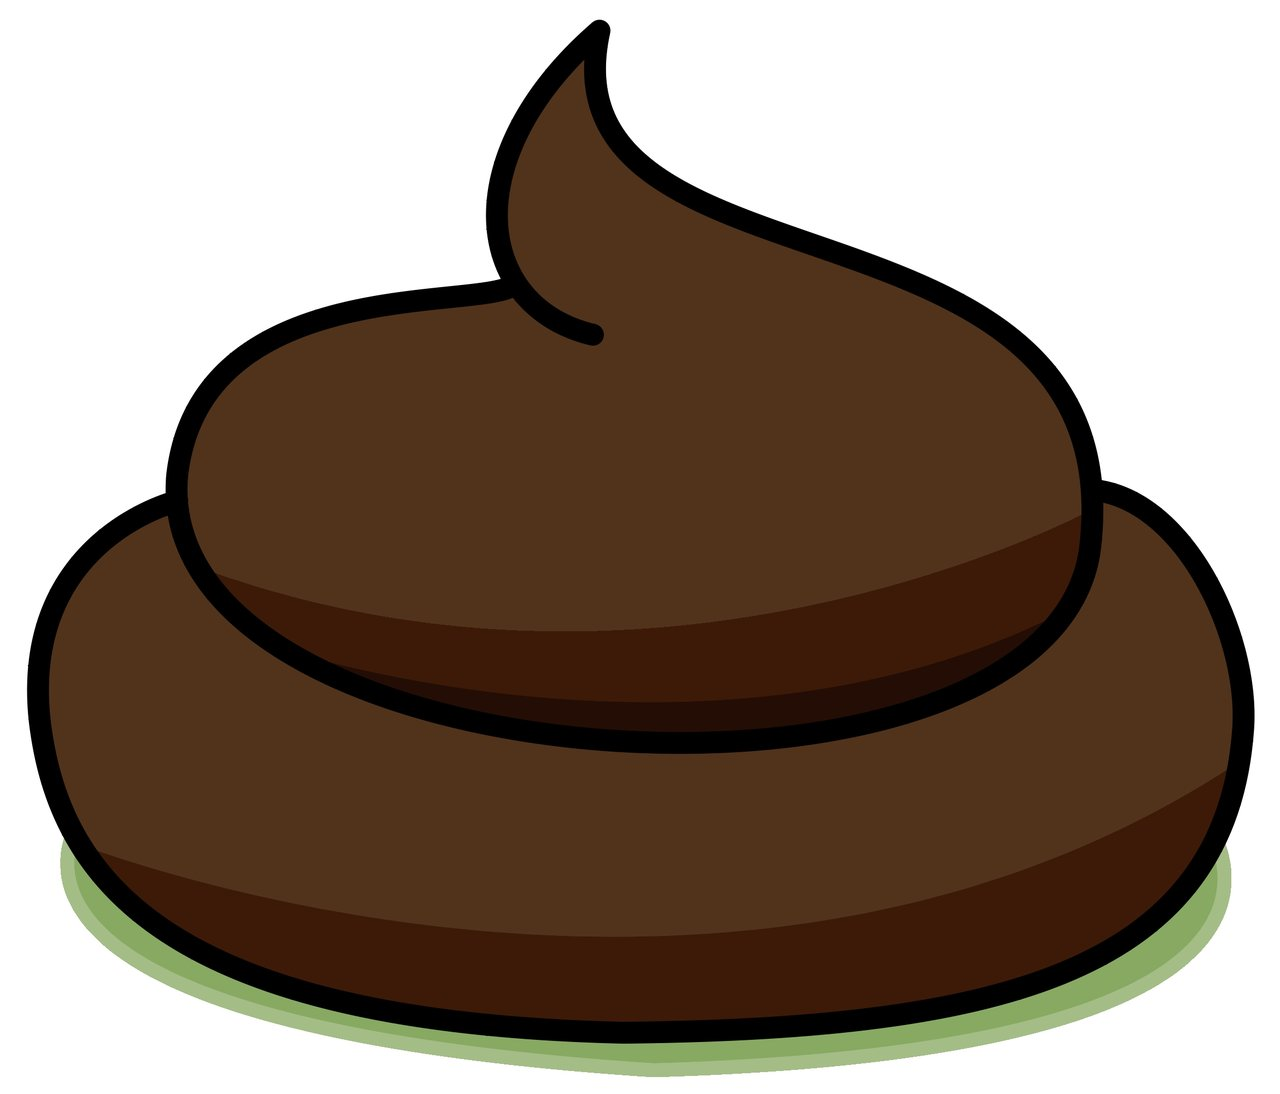 poop clipart swirly